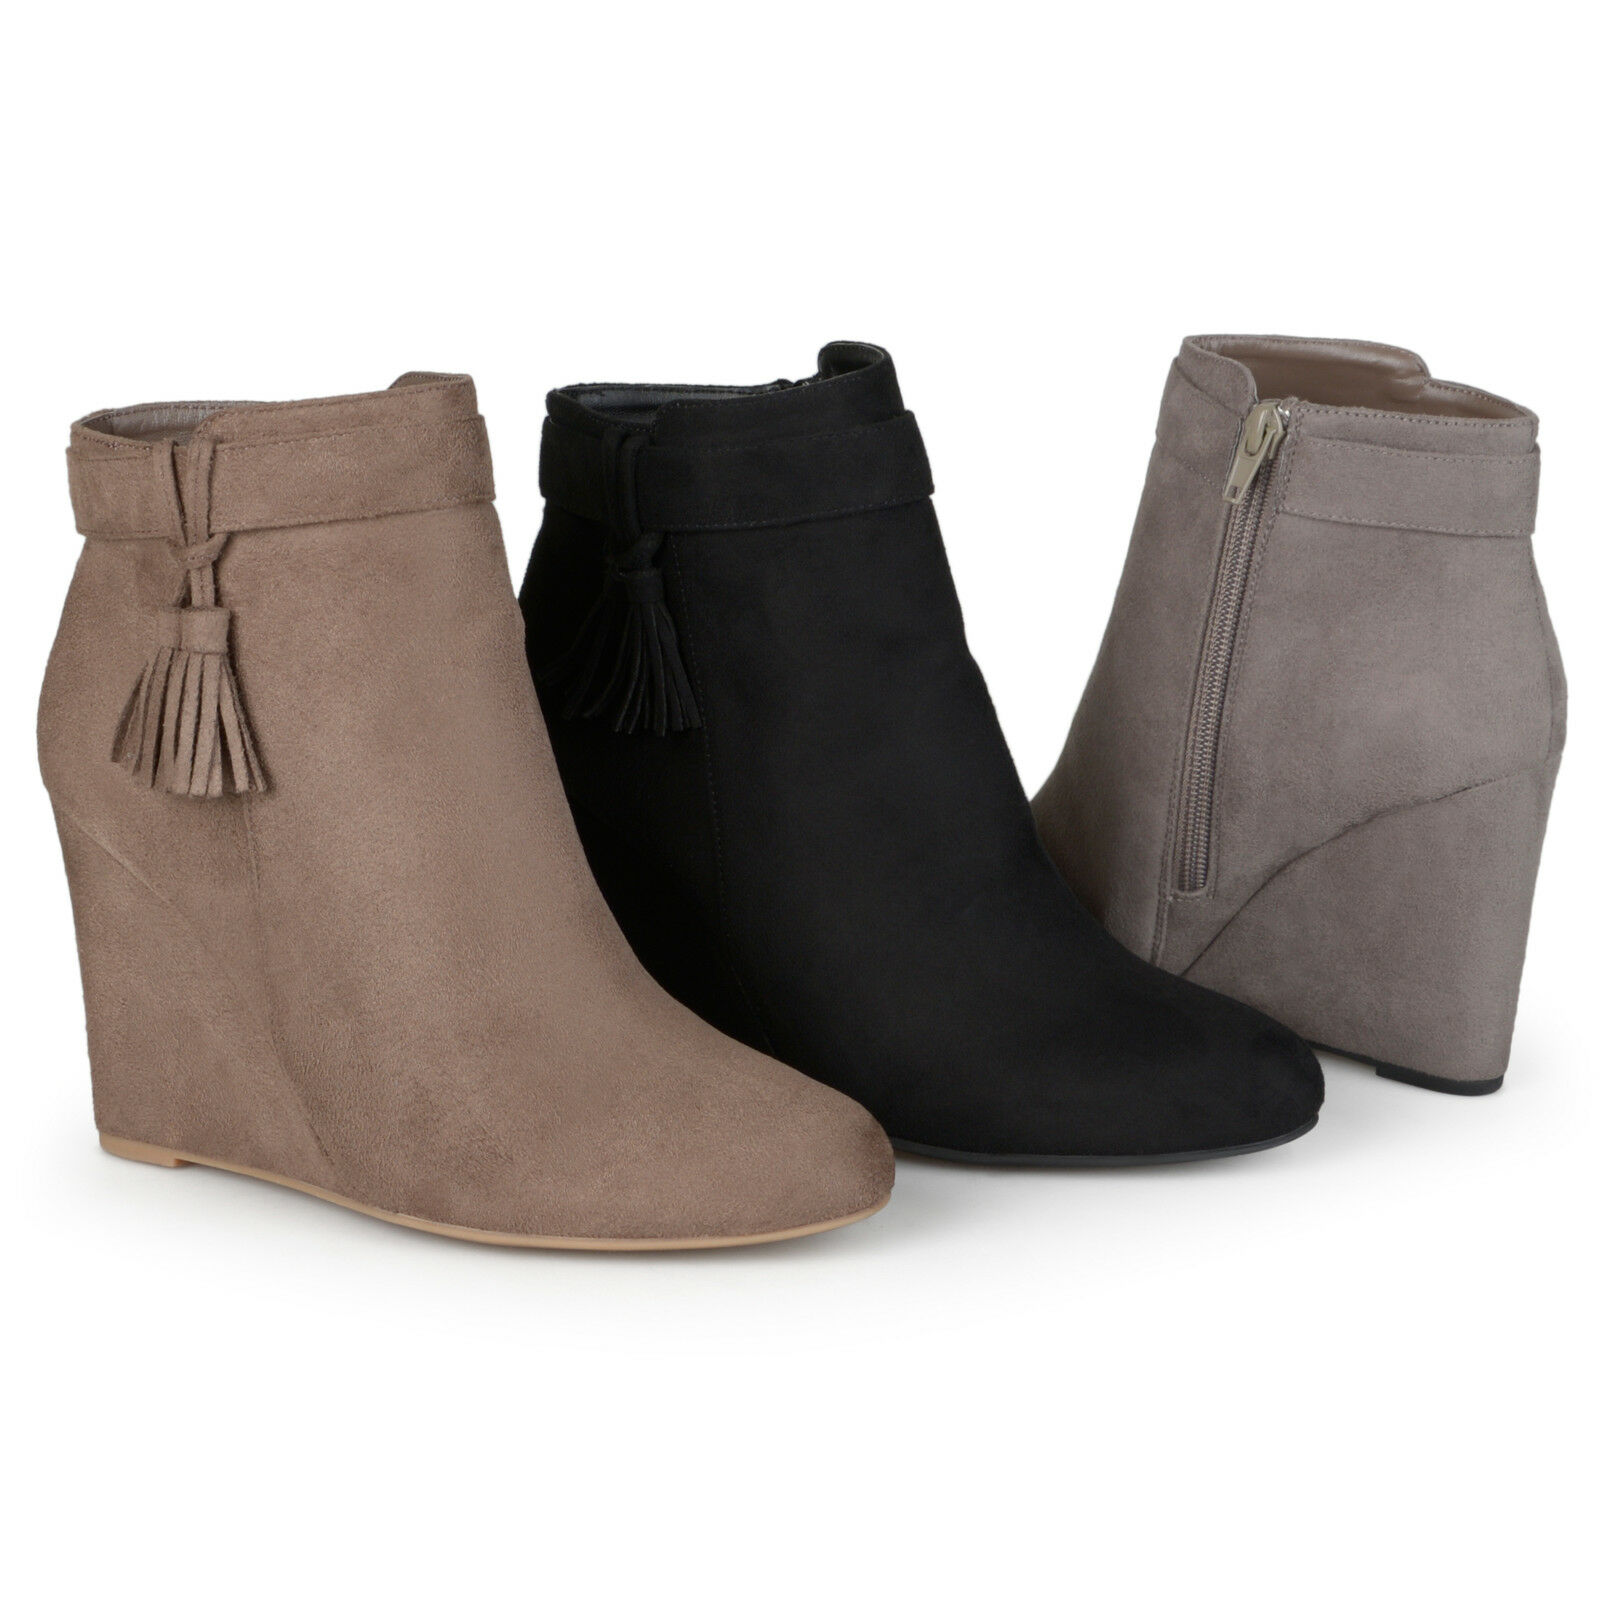 Brinley Co. Womens Wedge Tasseled Faux Suede Booties